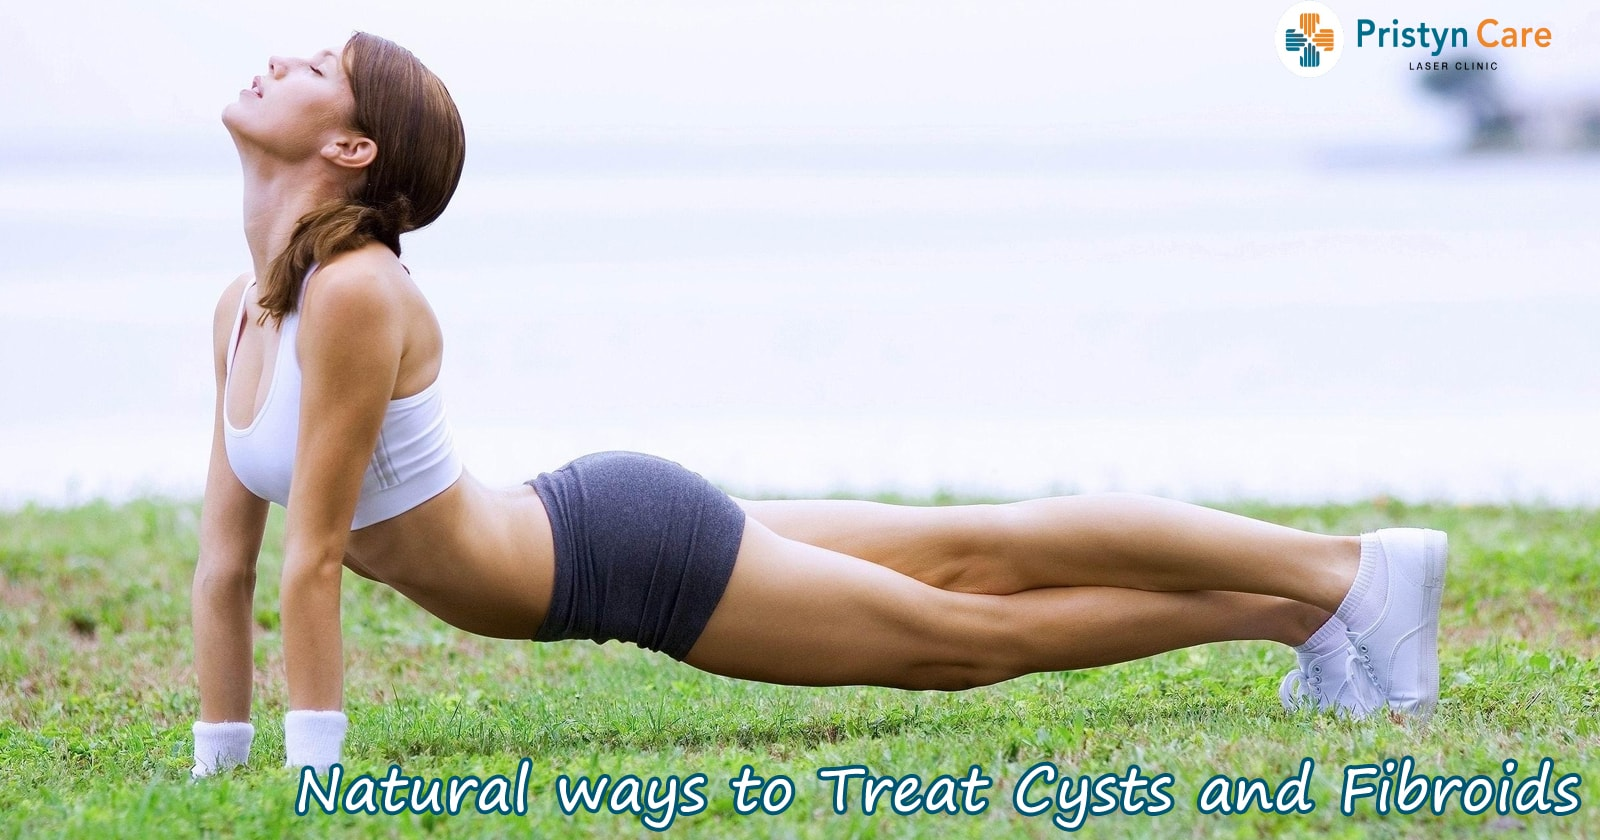 Natural ways to treat cysts and fibroids